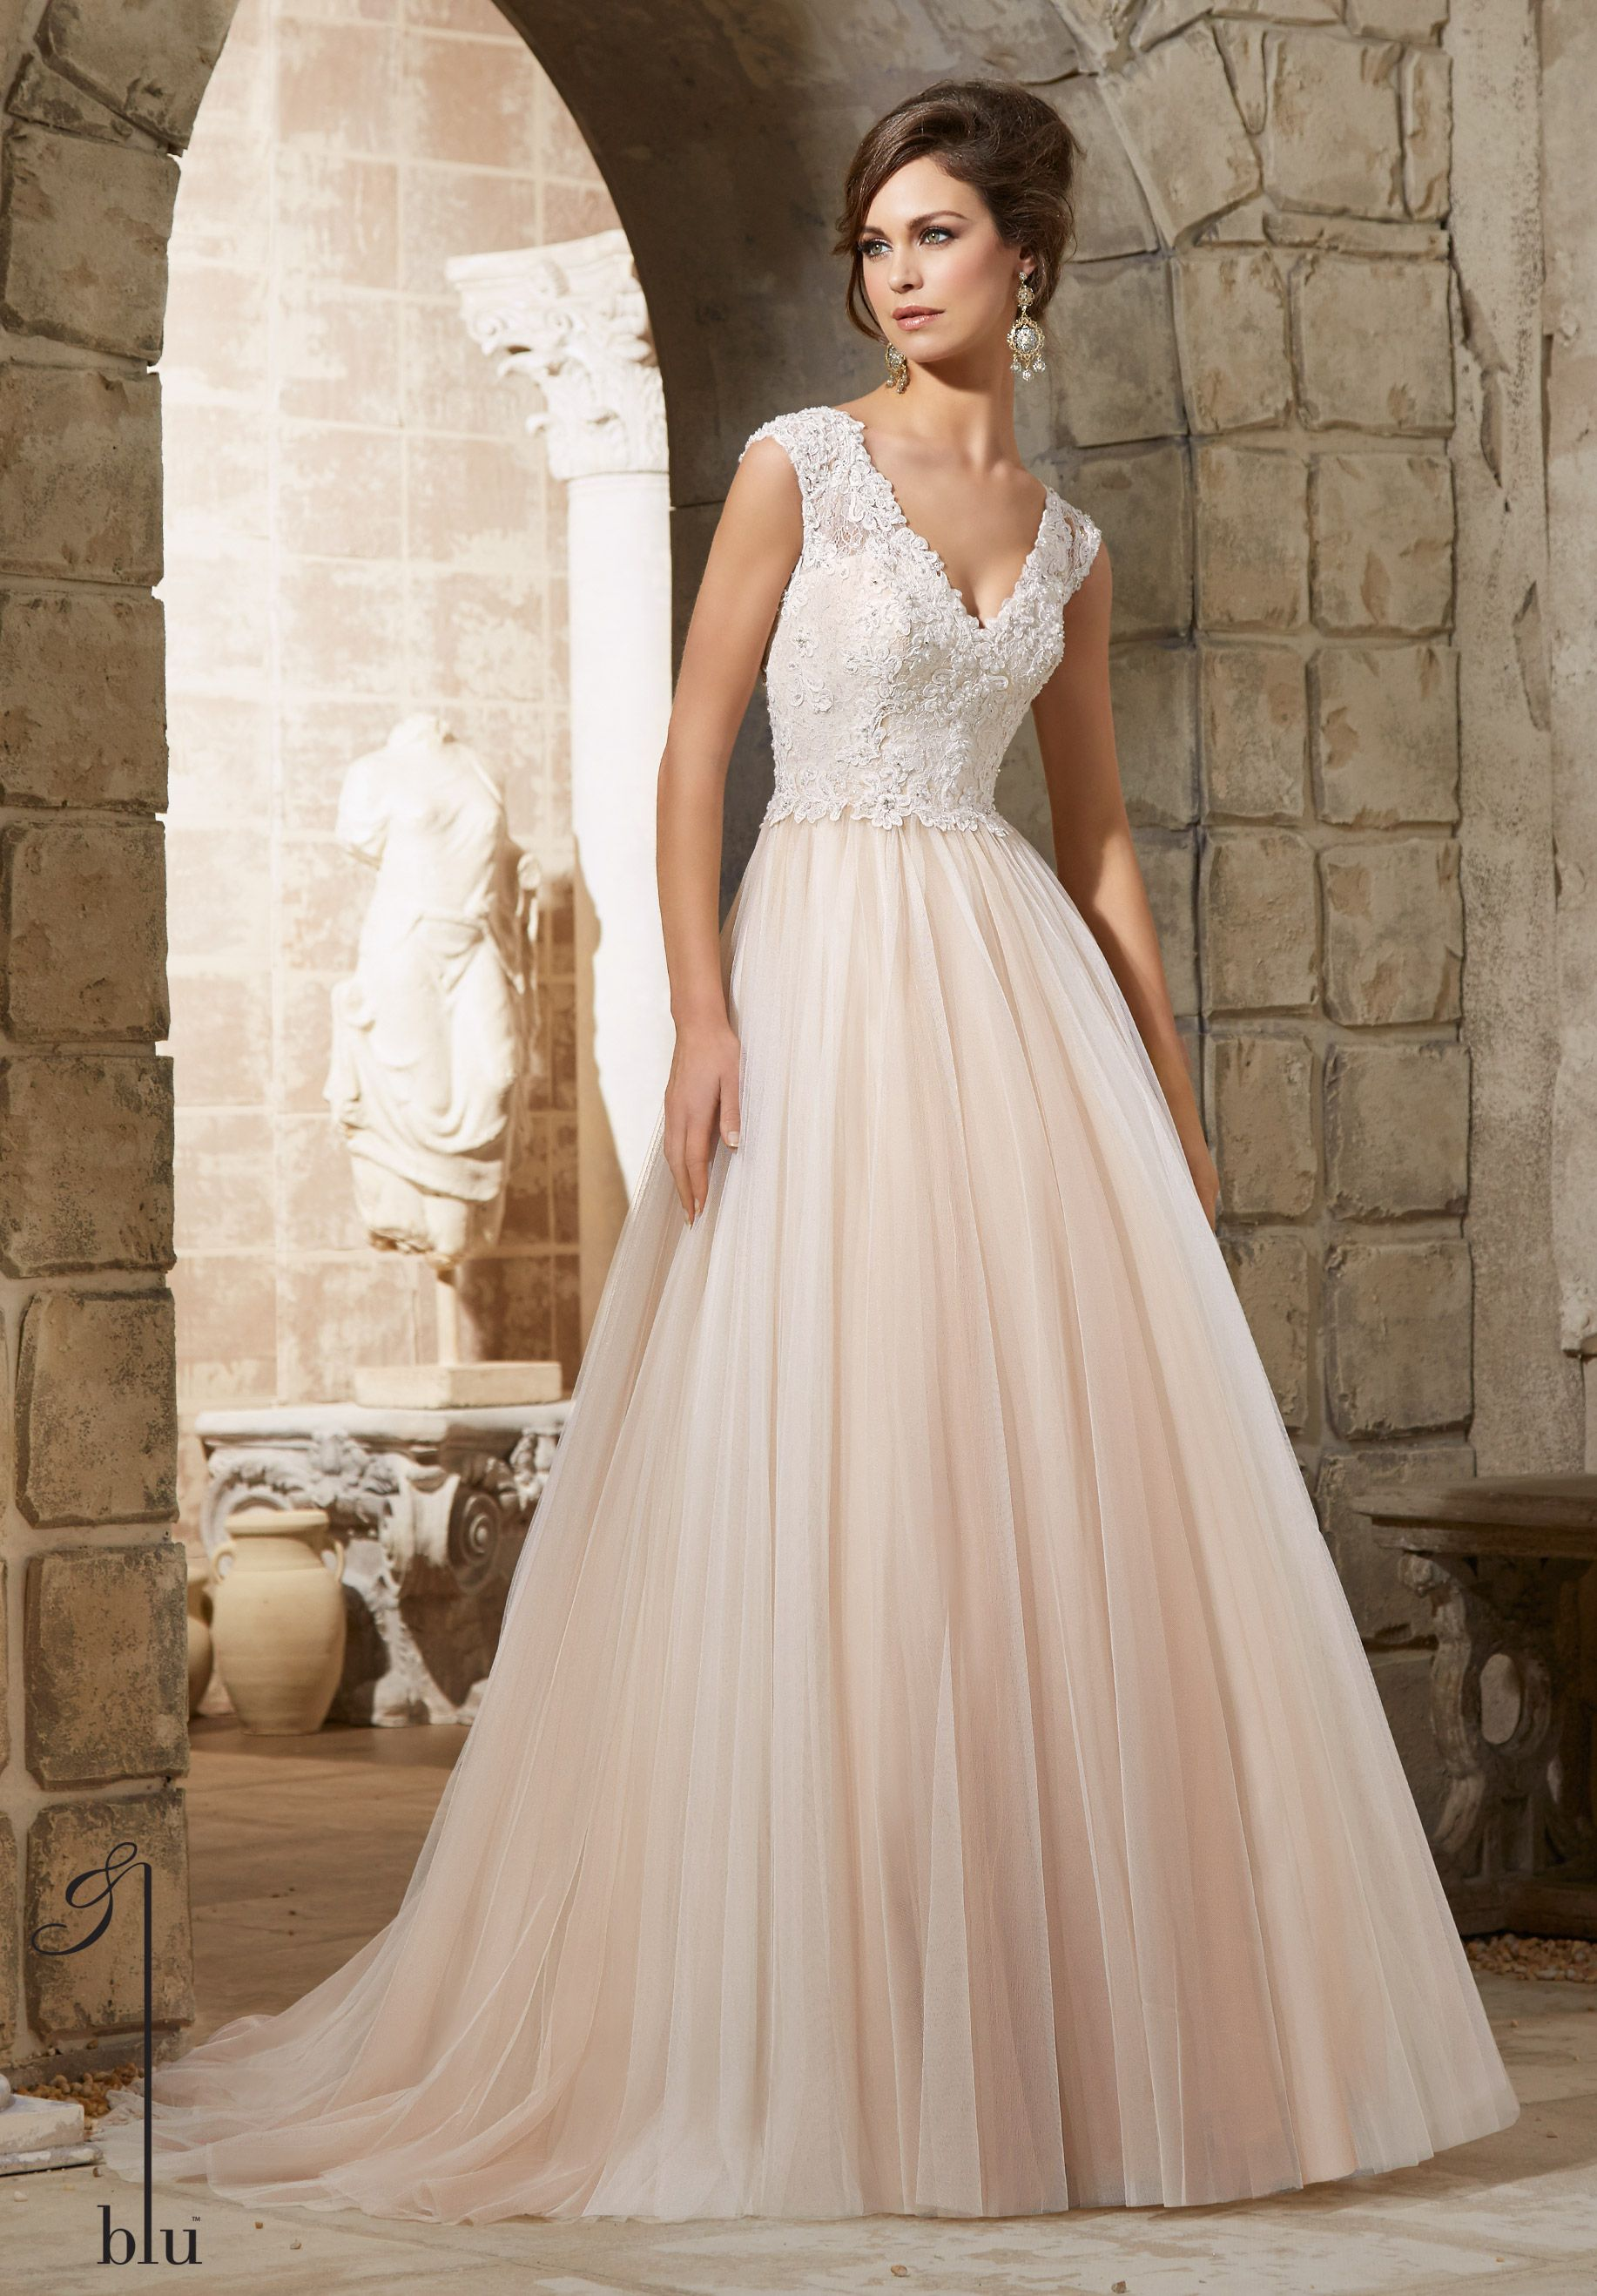 5368 Wedding Gowns Dresses Embroidered Lace Liques With Crystal Beading Overlay The Chantilly On